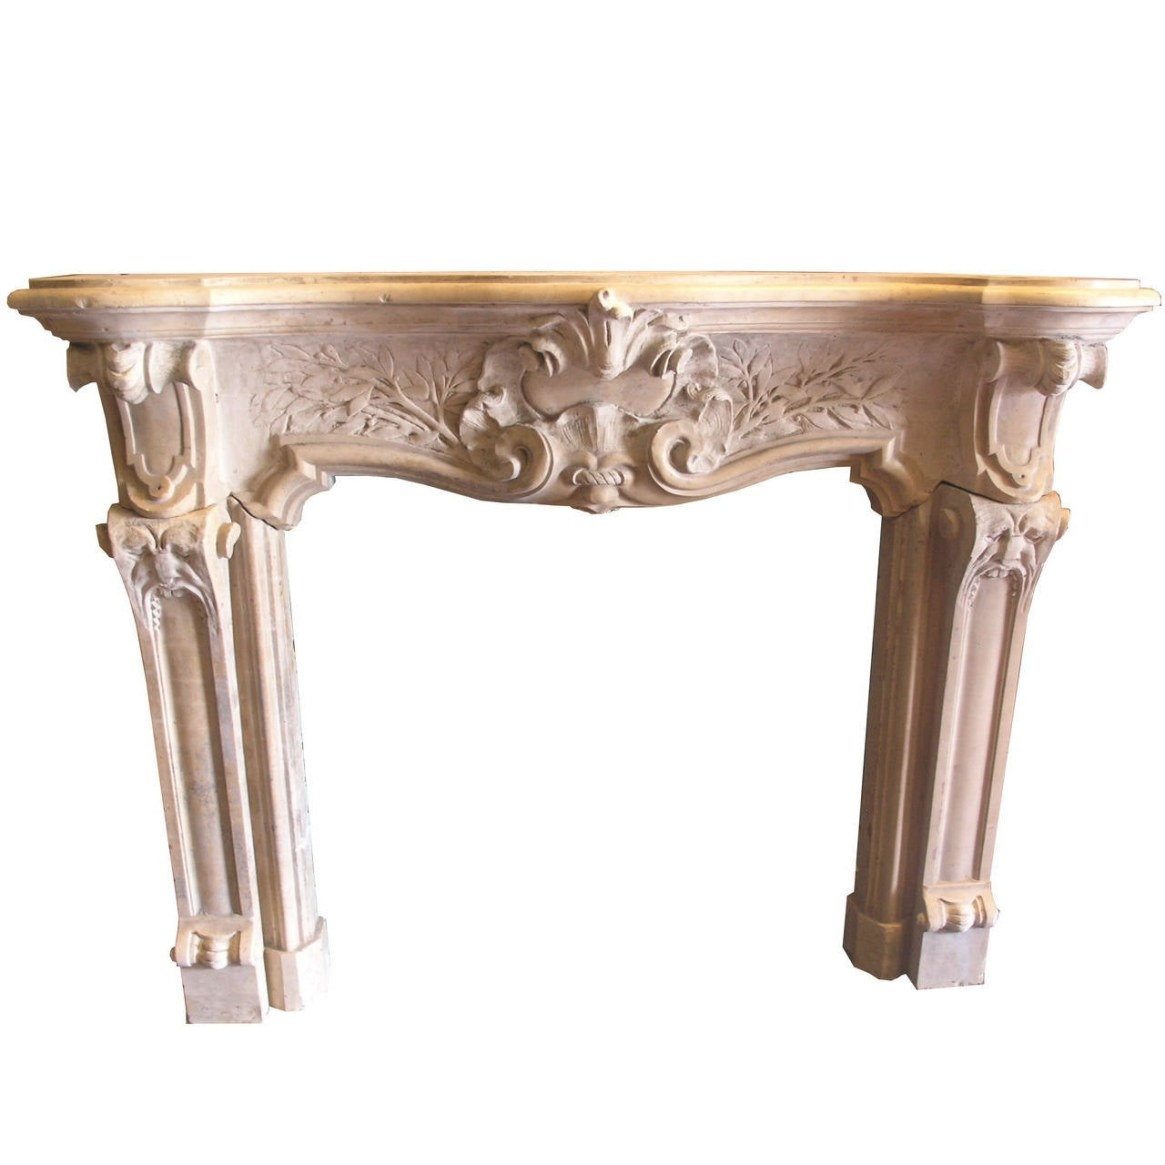 Antique Fireplace Mantel For Sale At 1Stdibs intended for Fireplace Mantels For Sale